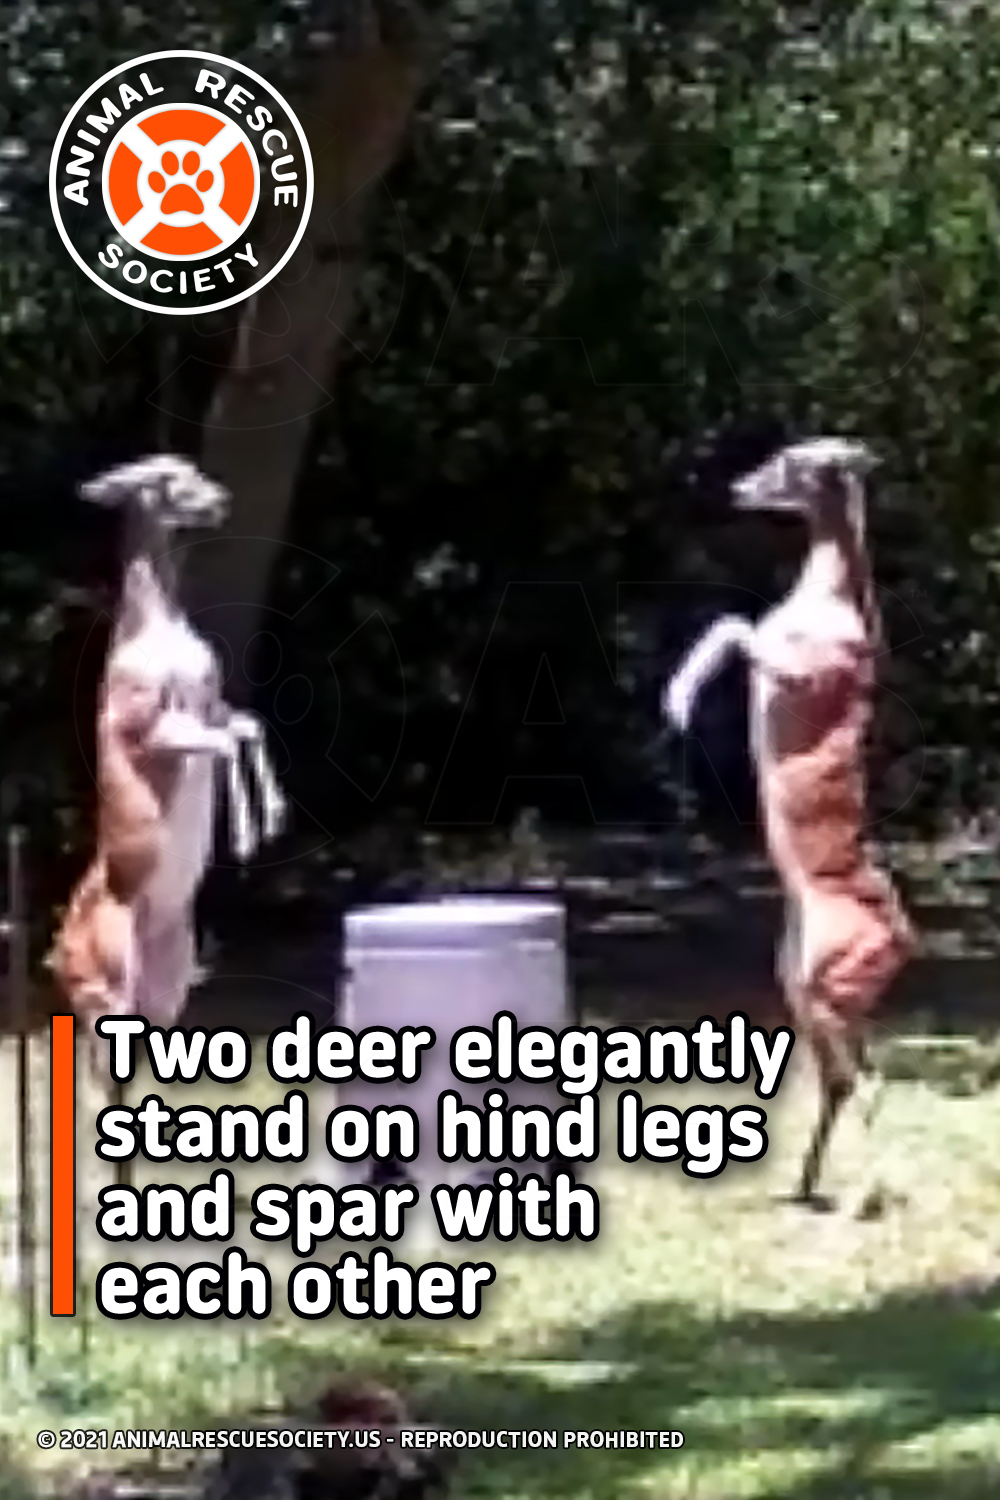 Two deer elegantly stand on hind legs and spar with each other